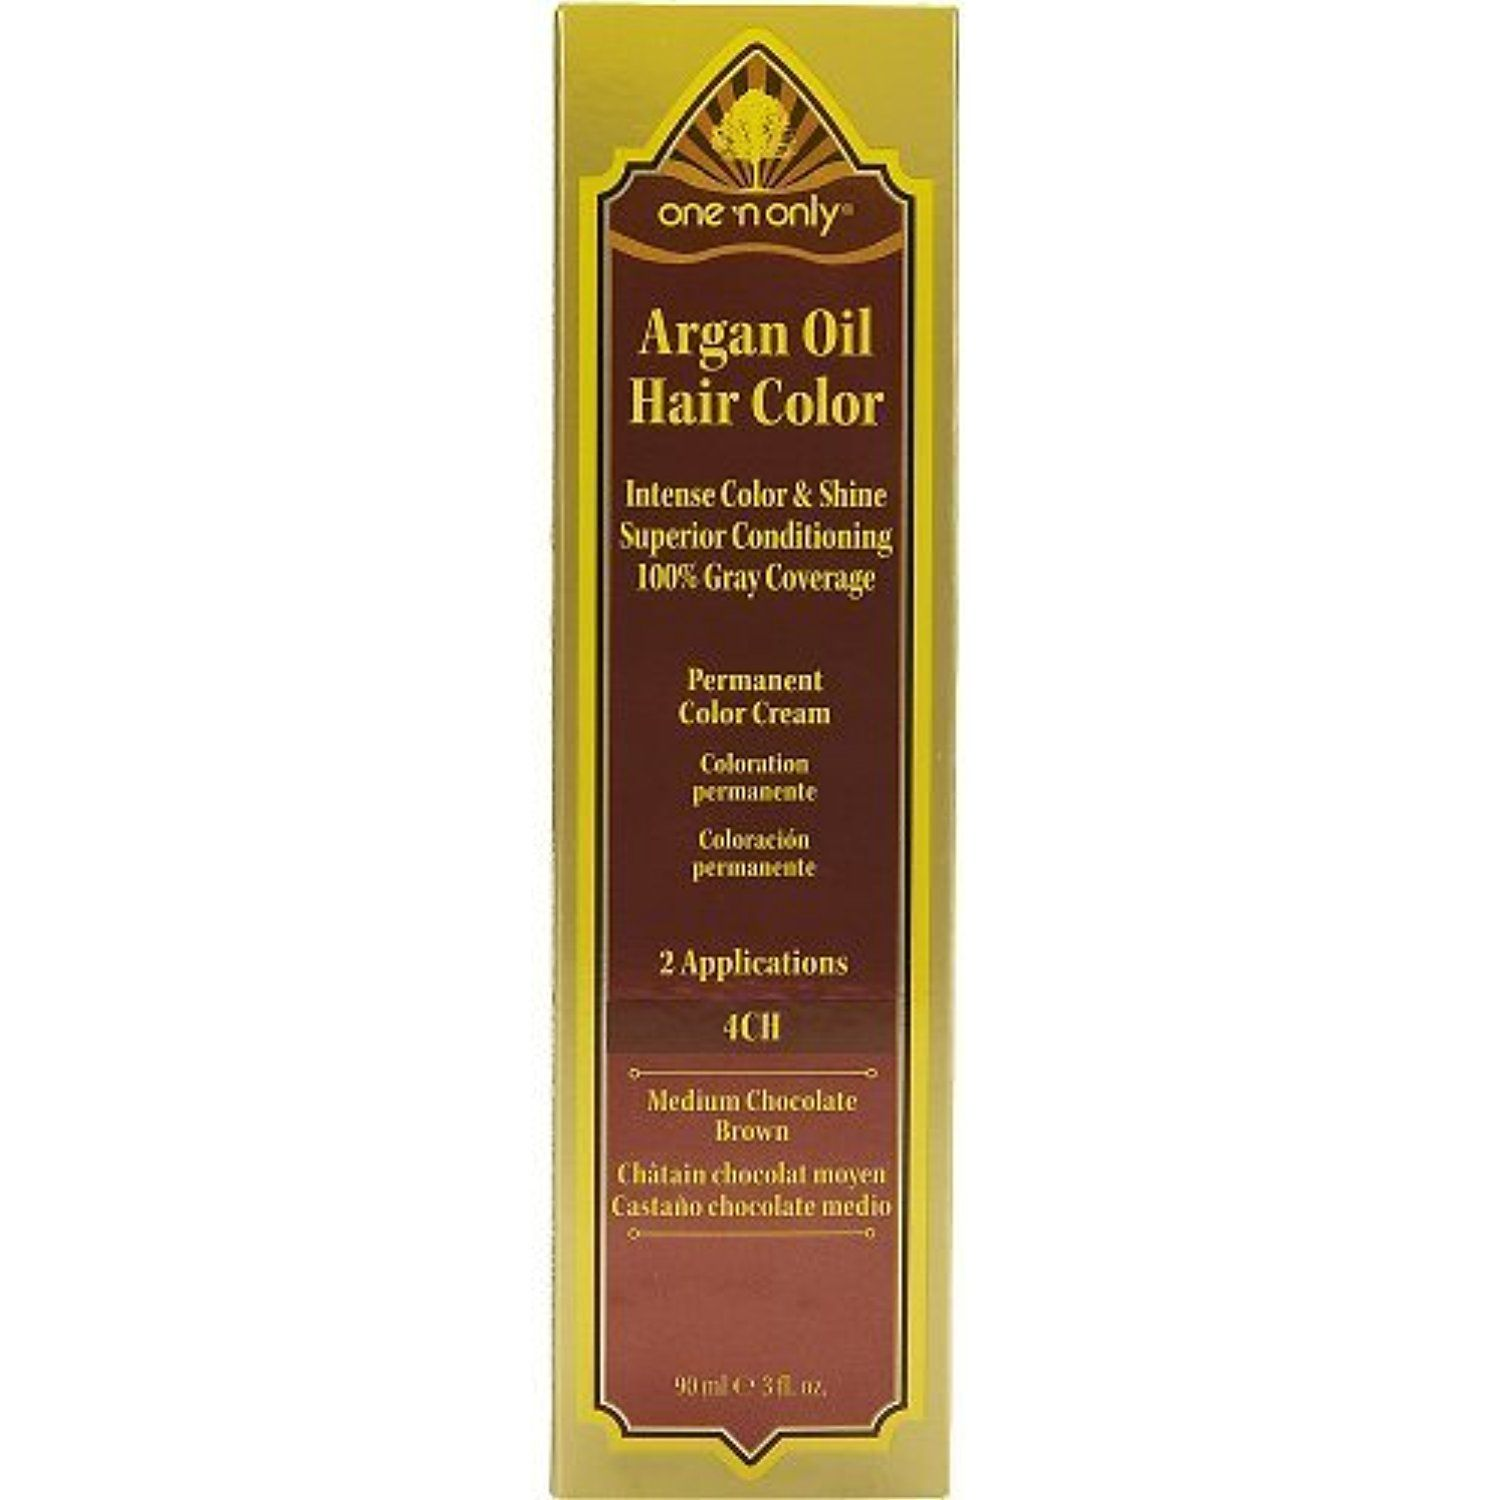 One N Only Argan Oil Hair Color 4ch Medium Chocolate Brown Click Image For More Details This Is An Affilia Argan Oil Hair Color Argan Oil Hair Hair Color